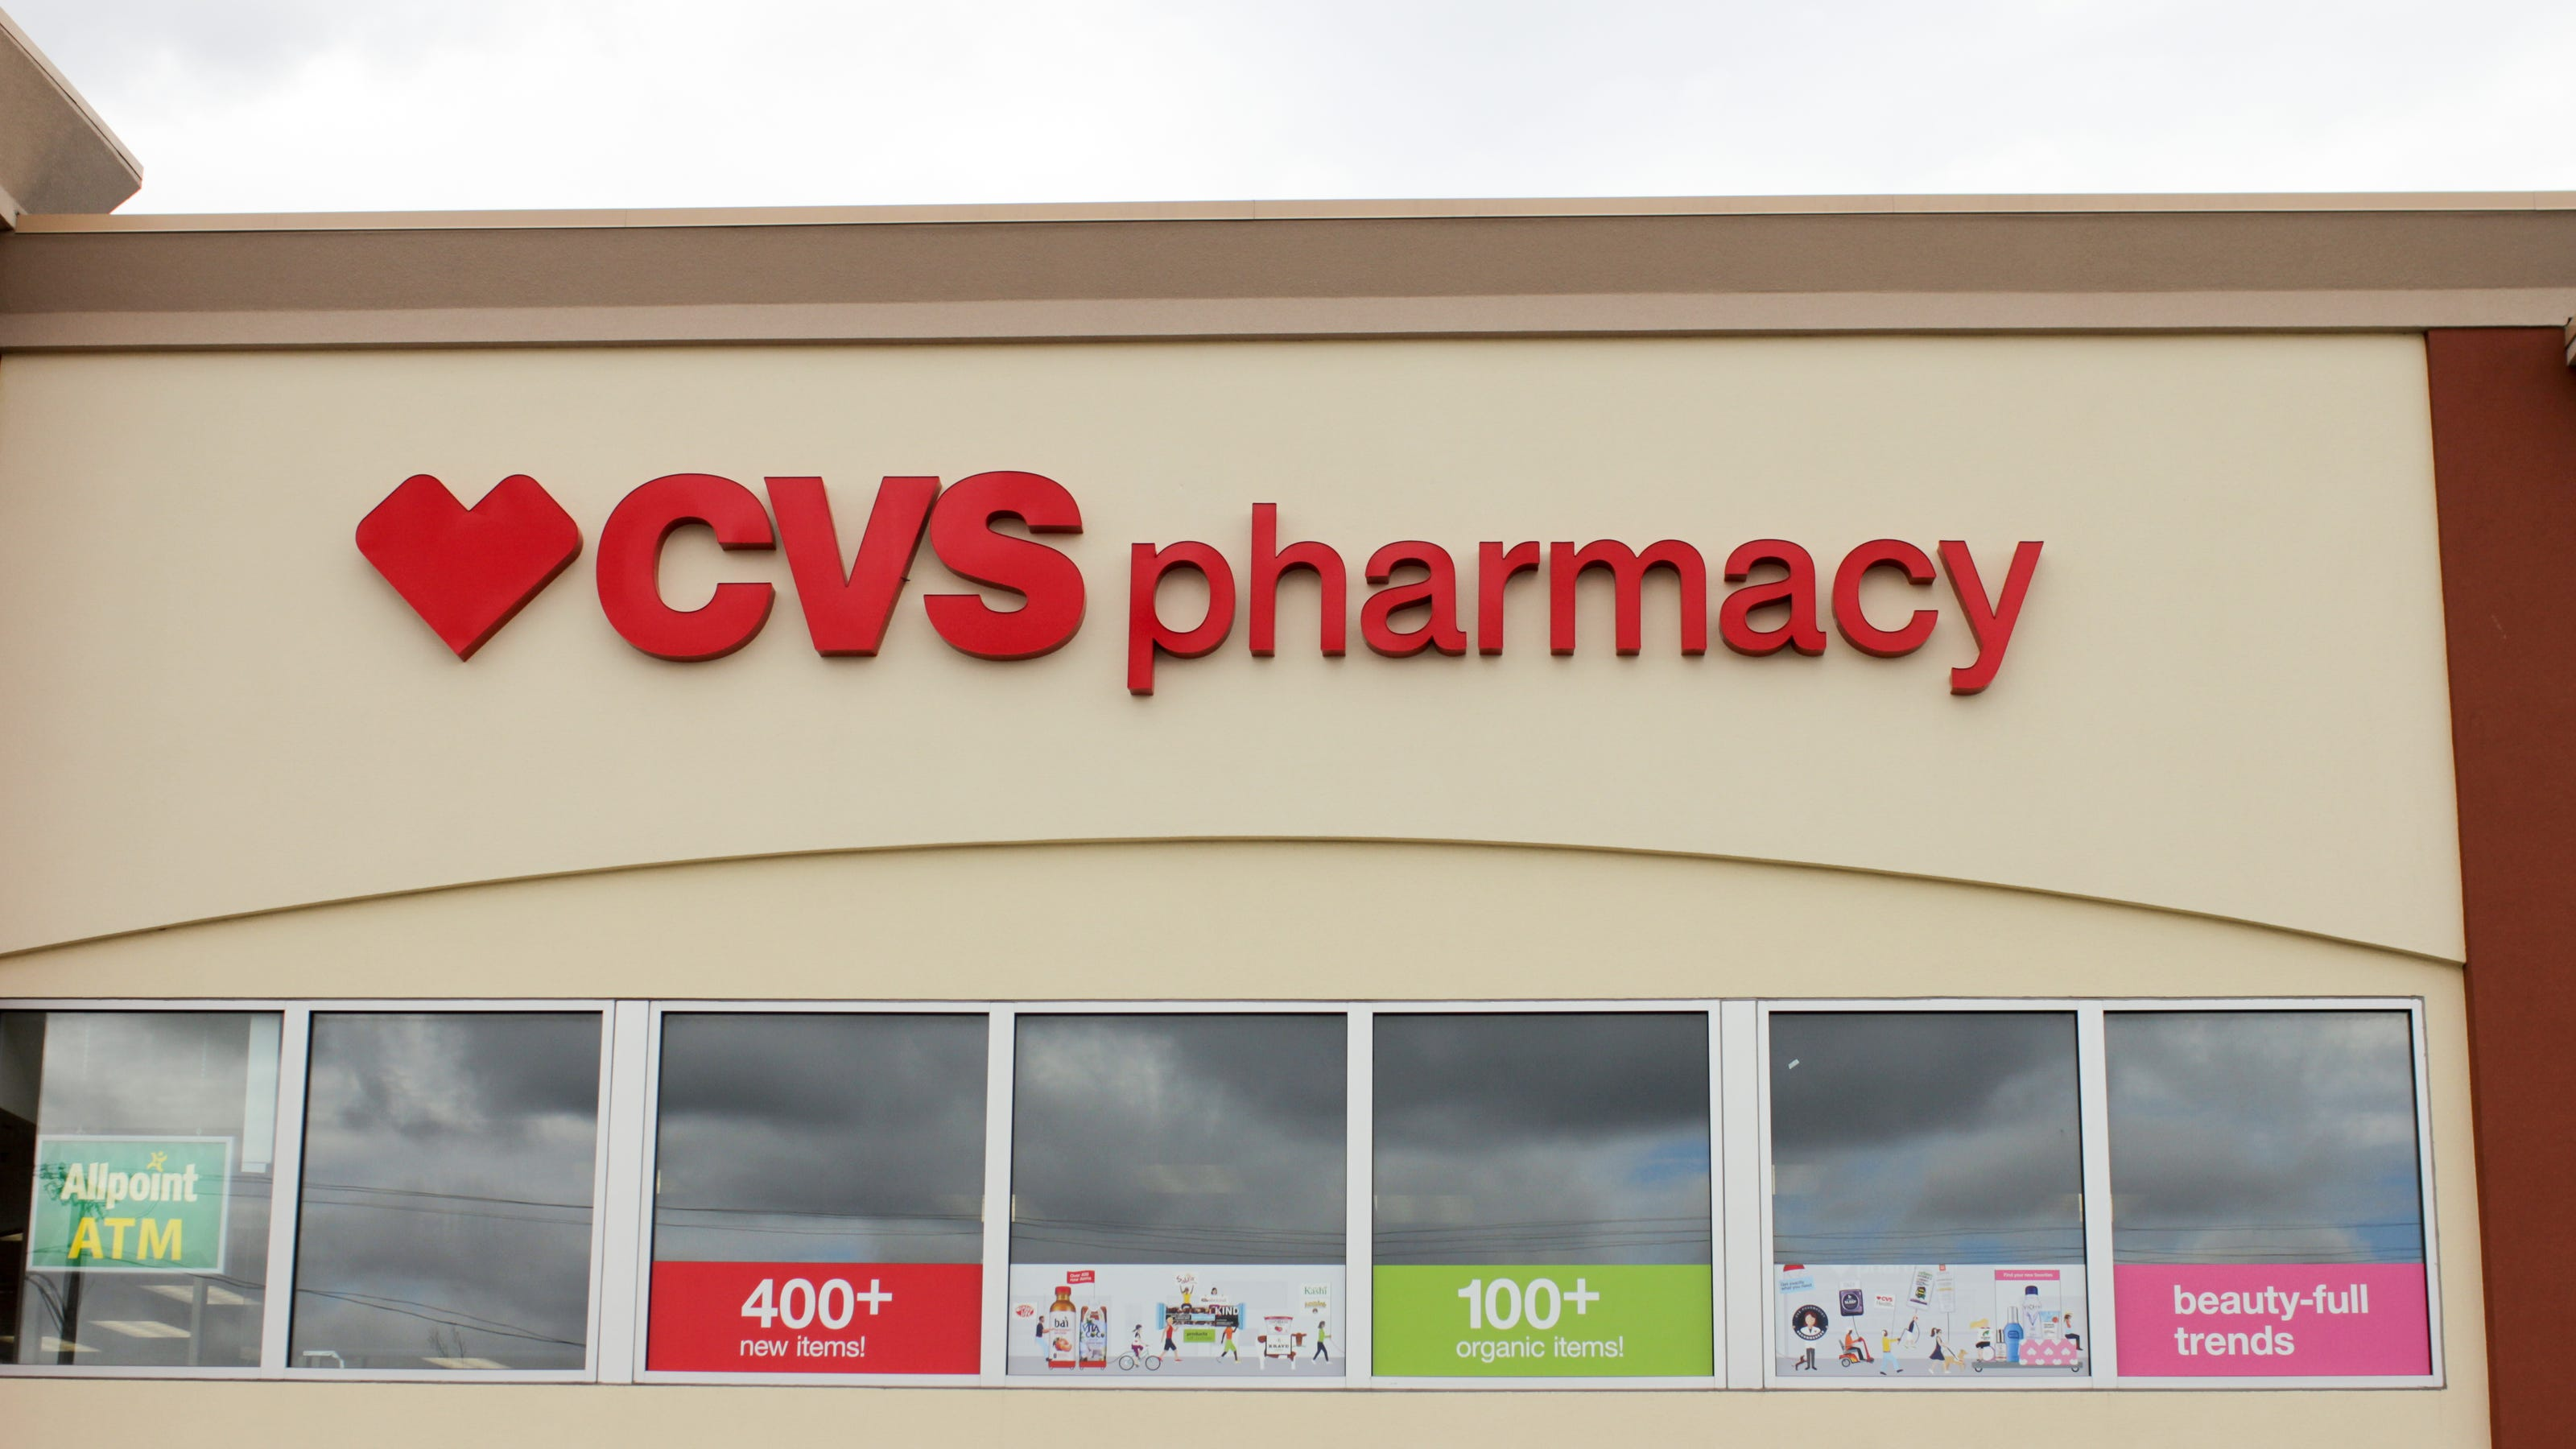 Cvs Wadesboro Nc Is It Open On Christmas Day 2020 CVS store closings: 22 'underperforming' stores to shutter in 2020